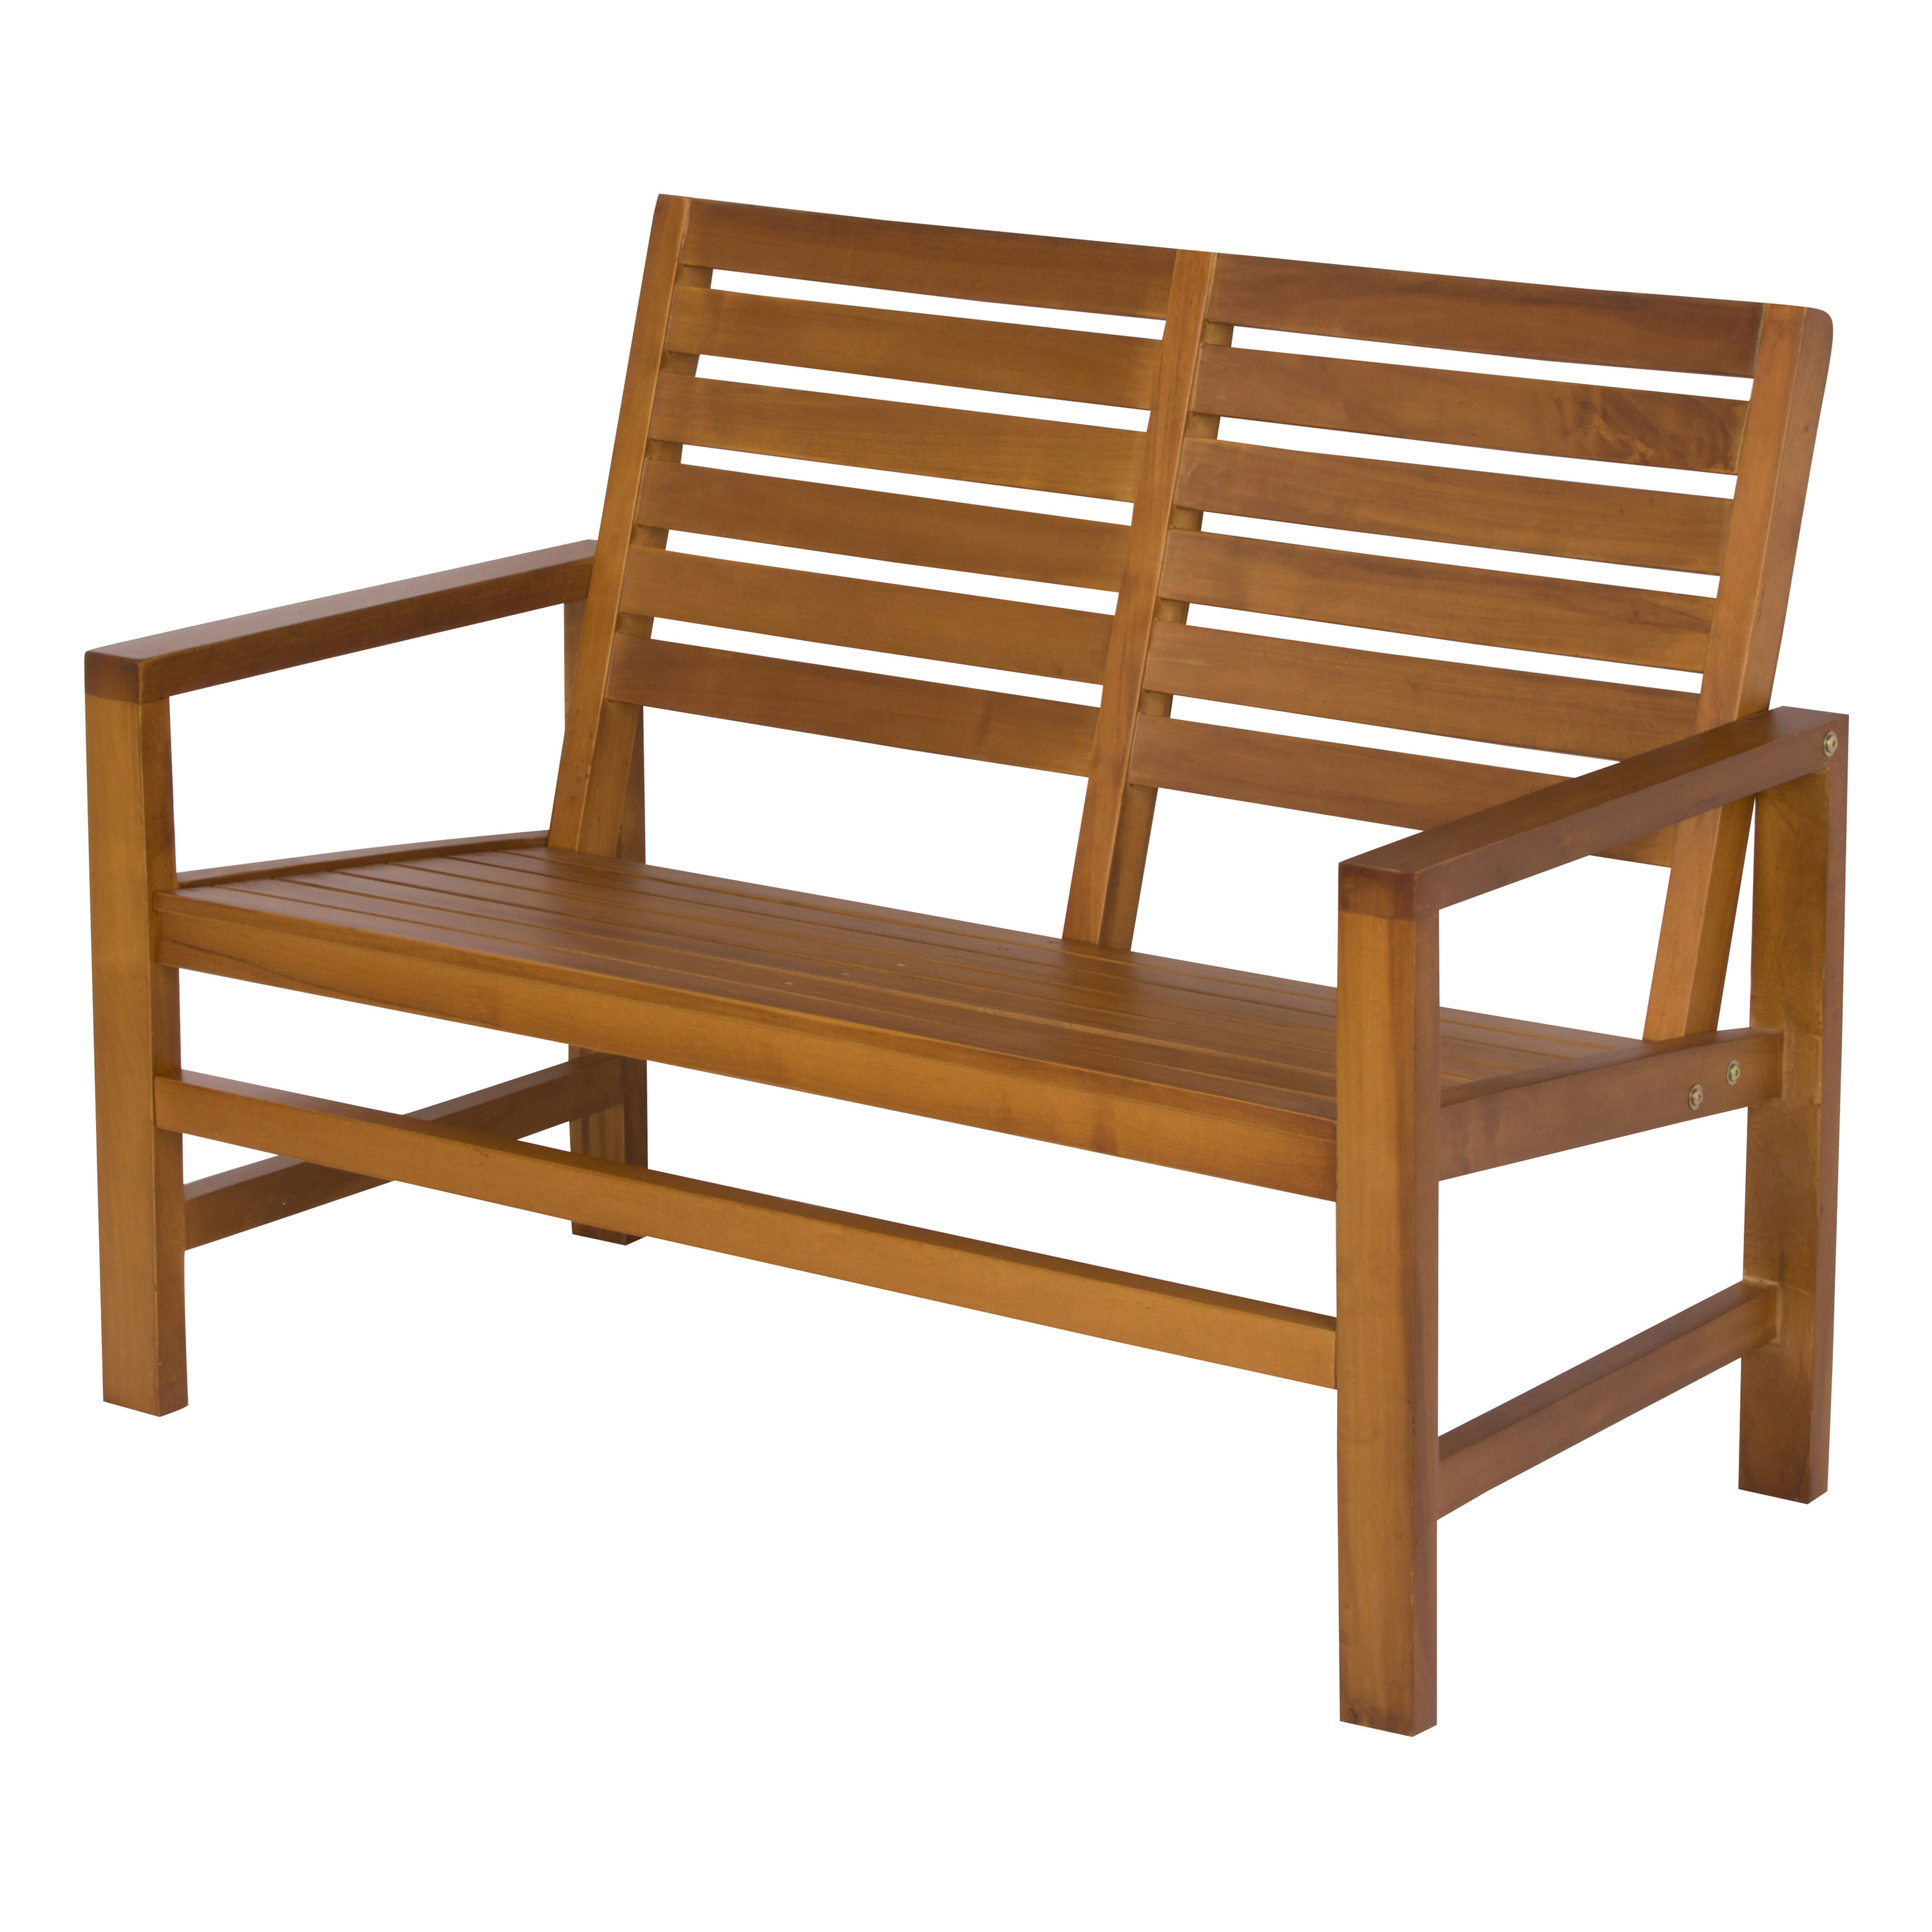 Shine Company Contemporary Garden Bench 40 in. - Oak